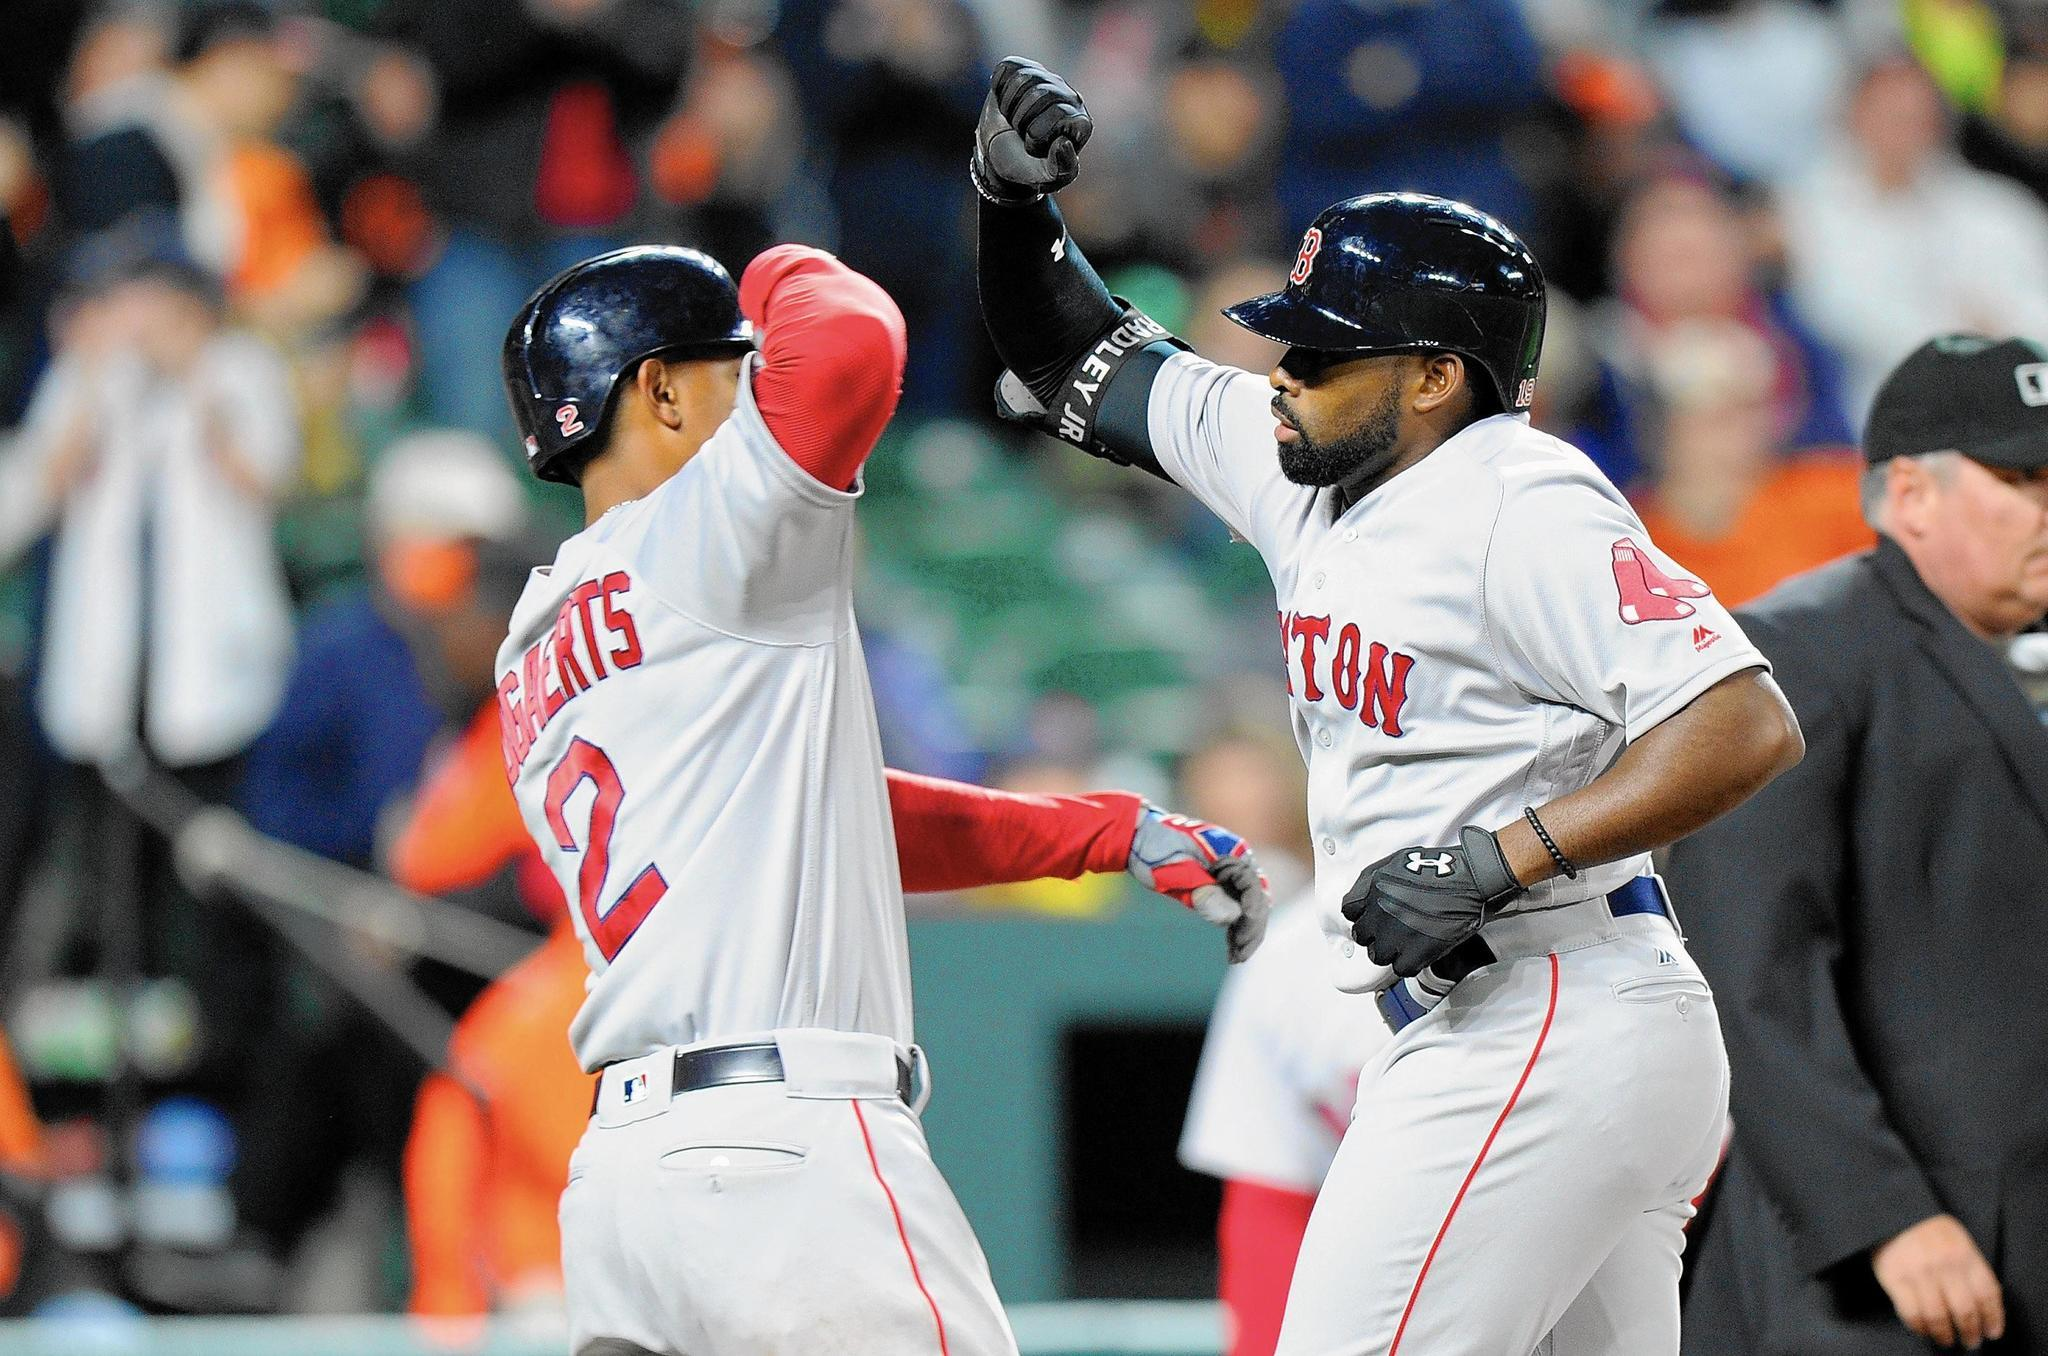 Hc-red-sox-orioles-0423-20170422